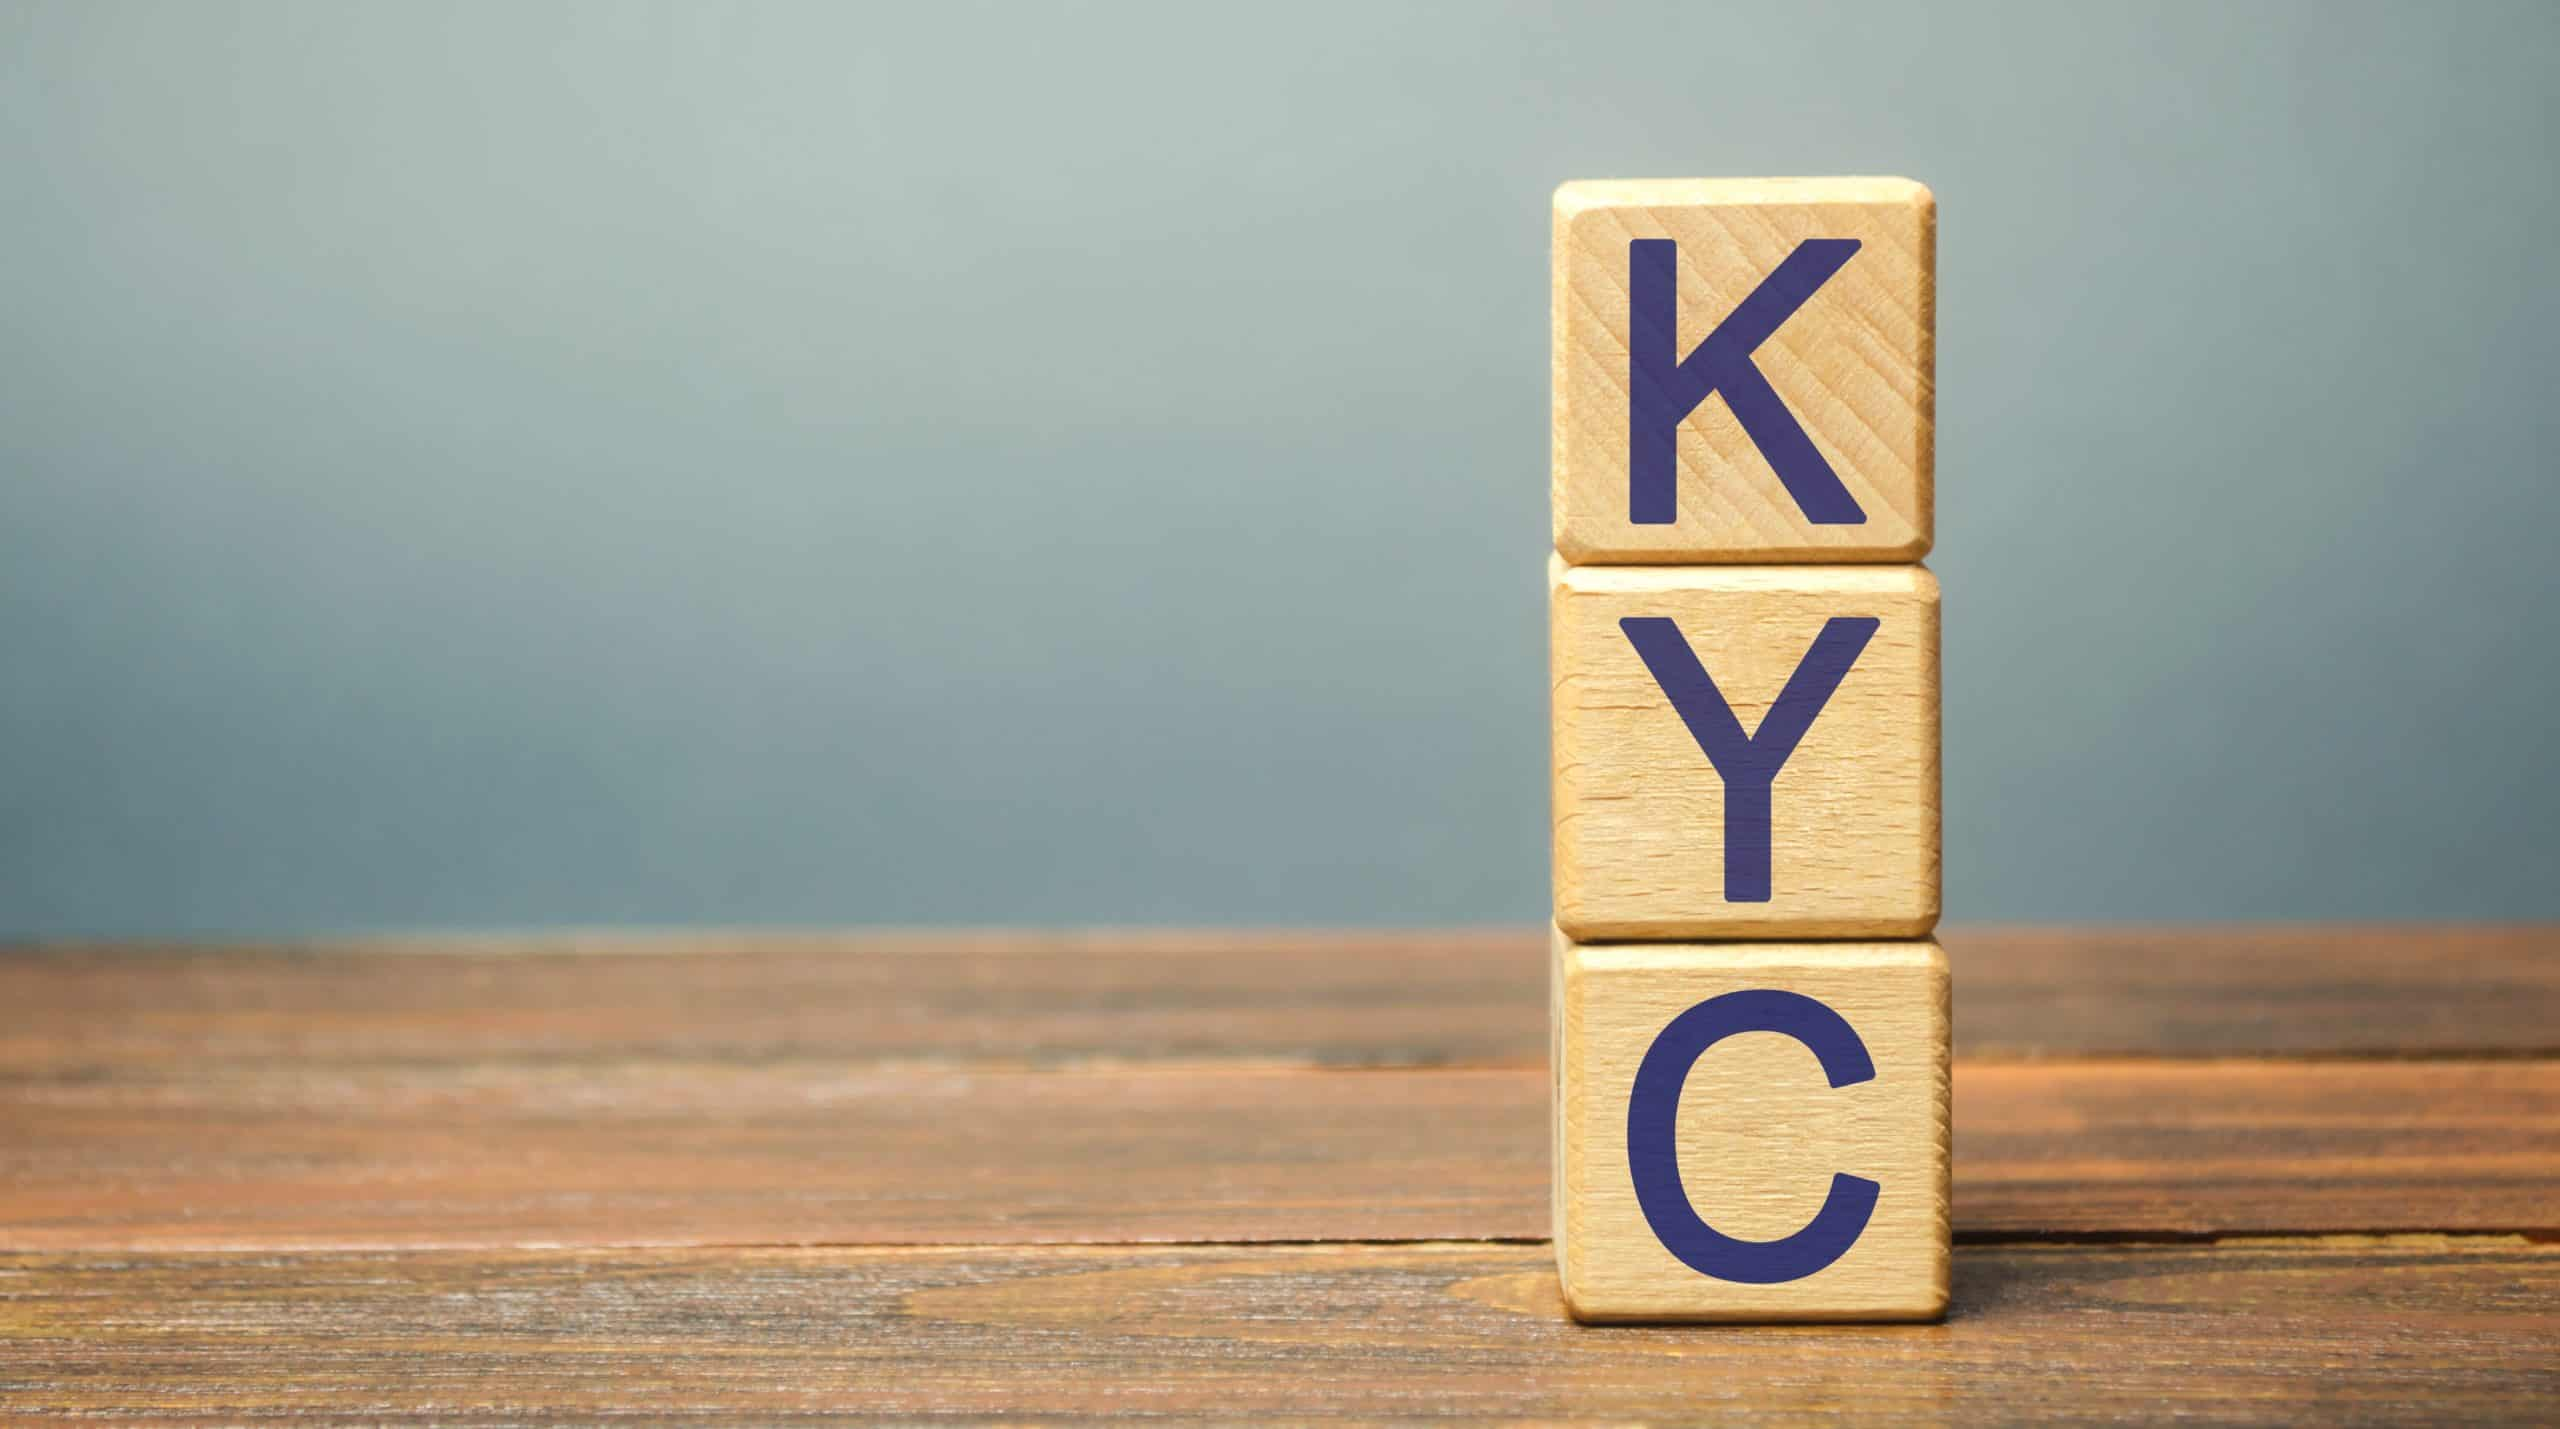 wooden blocks with the word kyc know your customer scaled